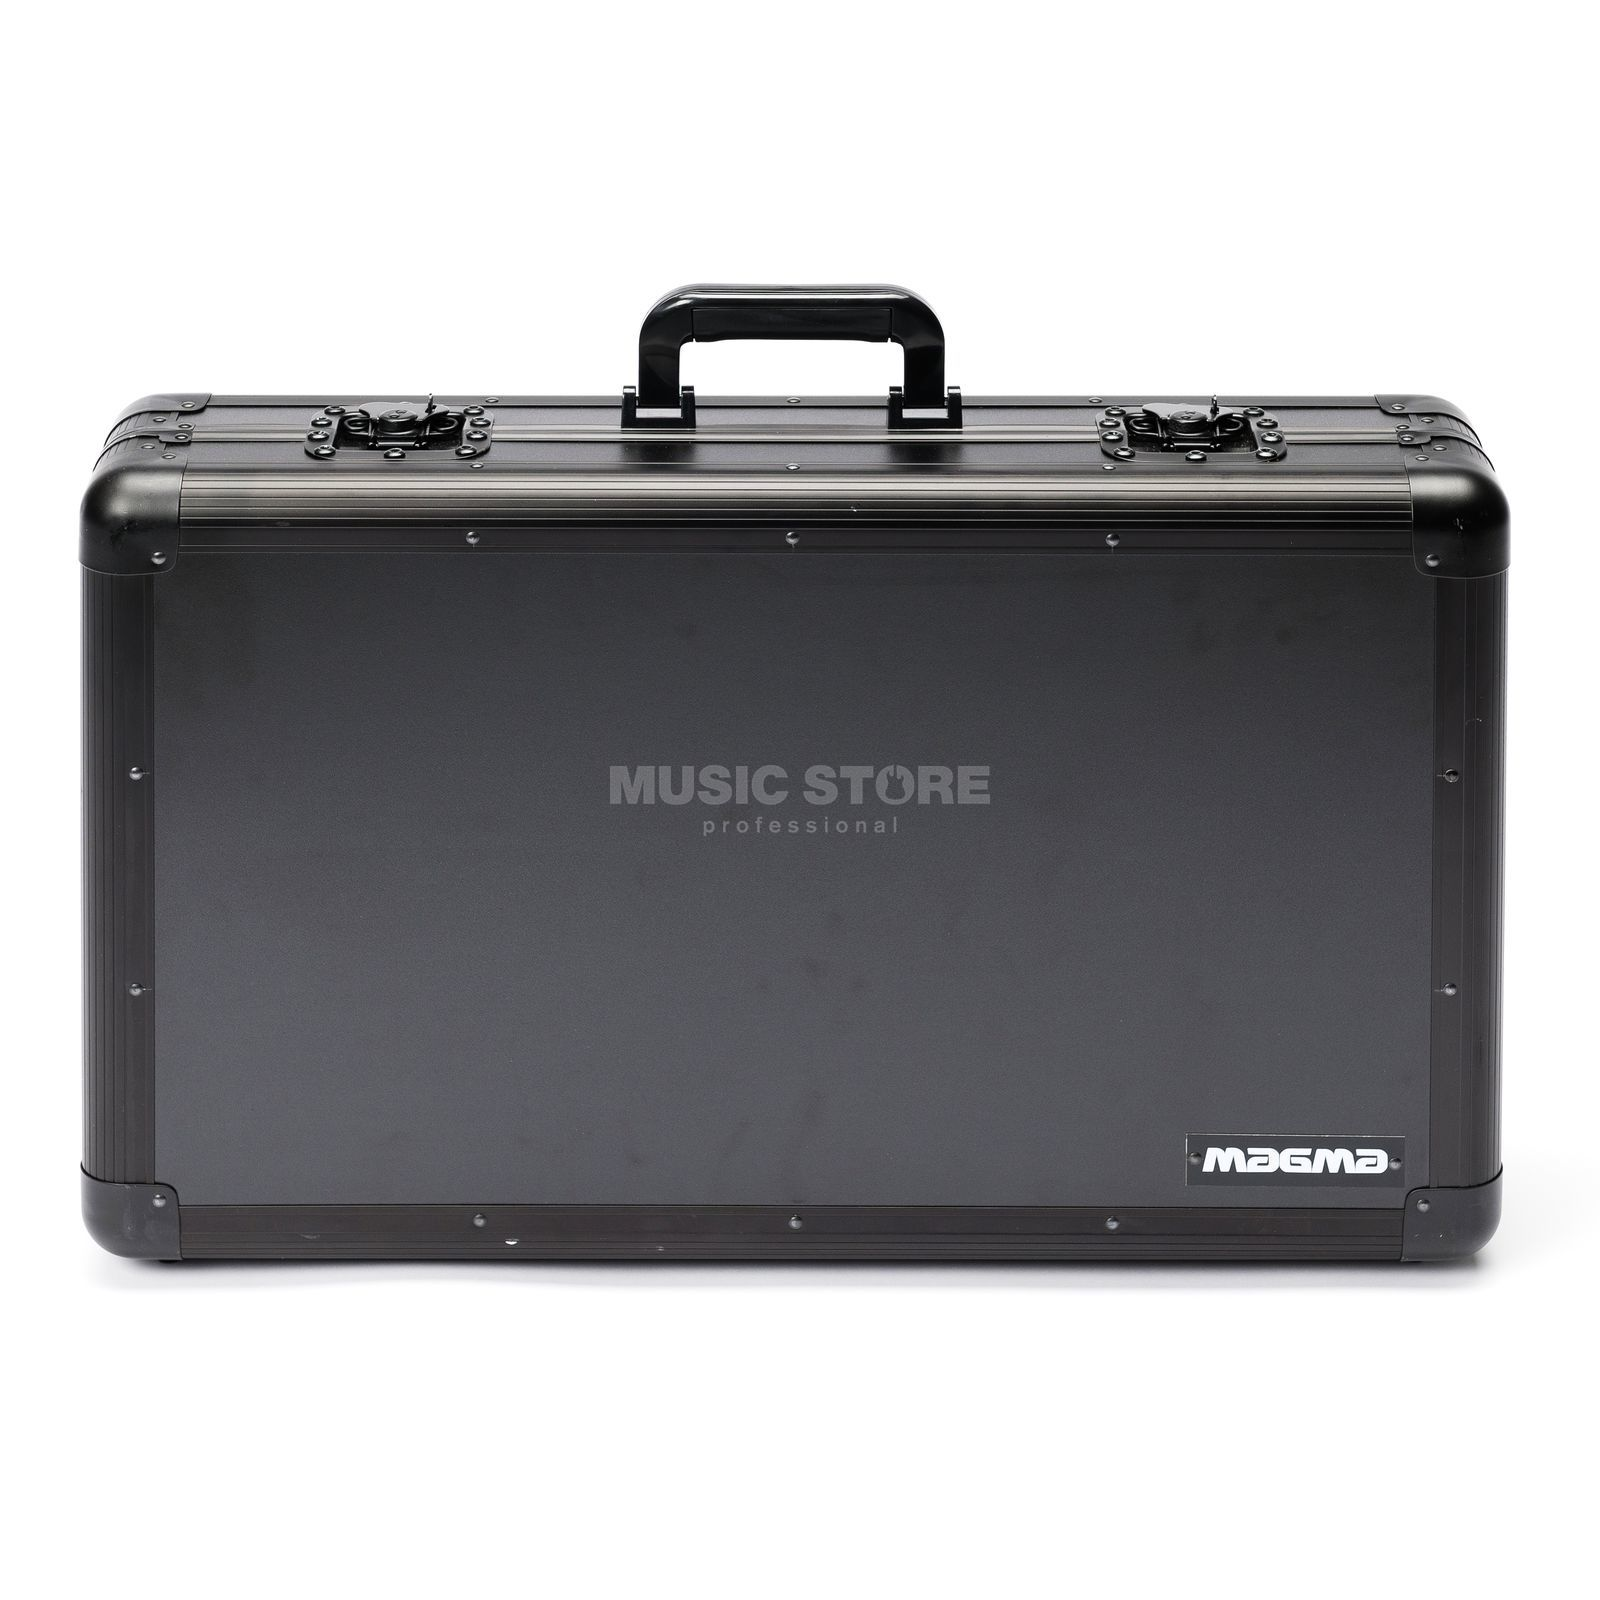 Magma Carrylite DJ-Case XL Plus Изображение товара